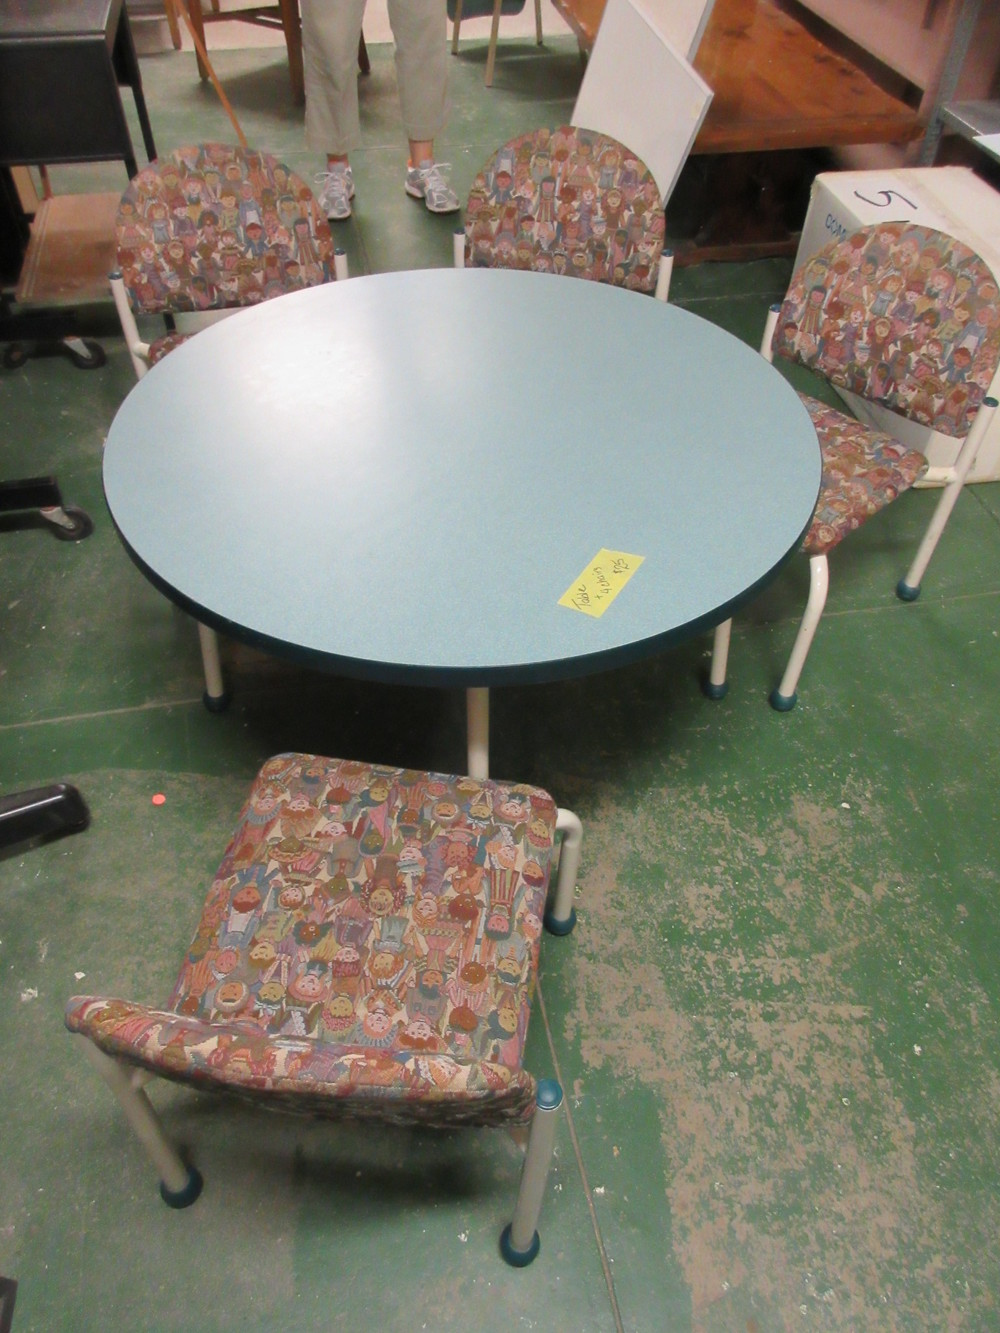 childrens table and chairs.JPG